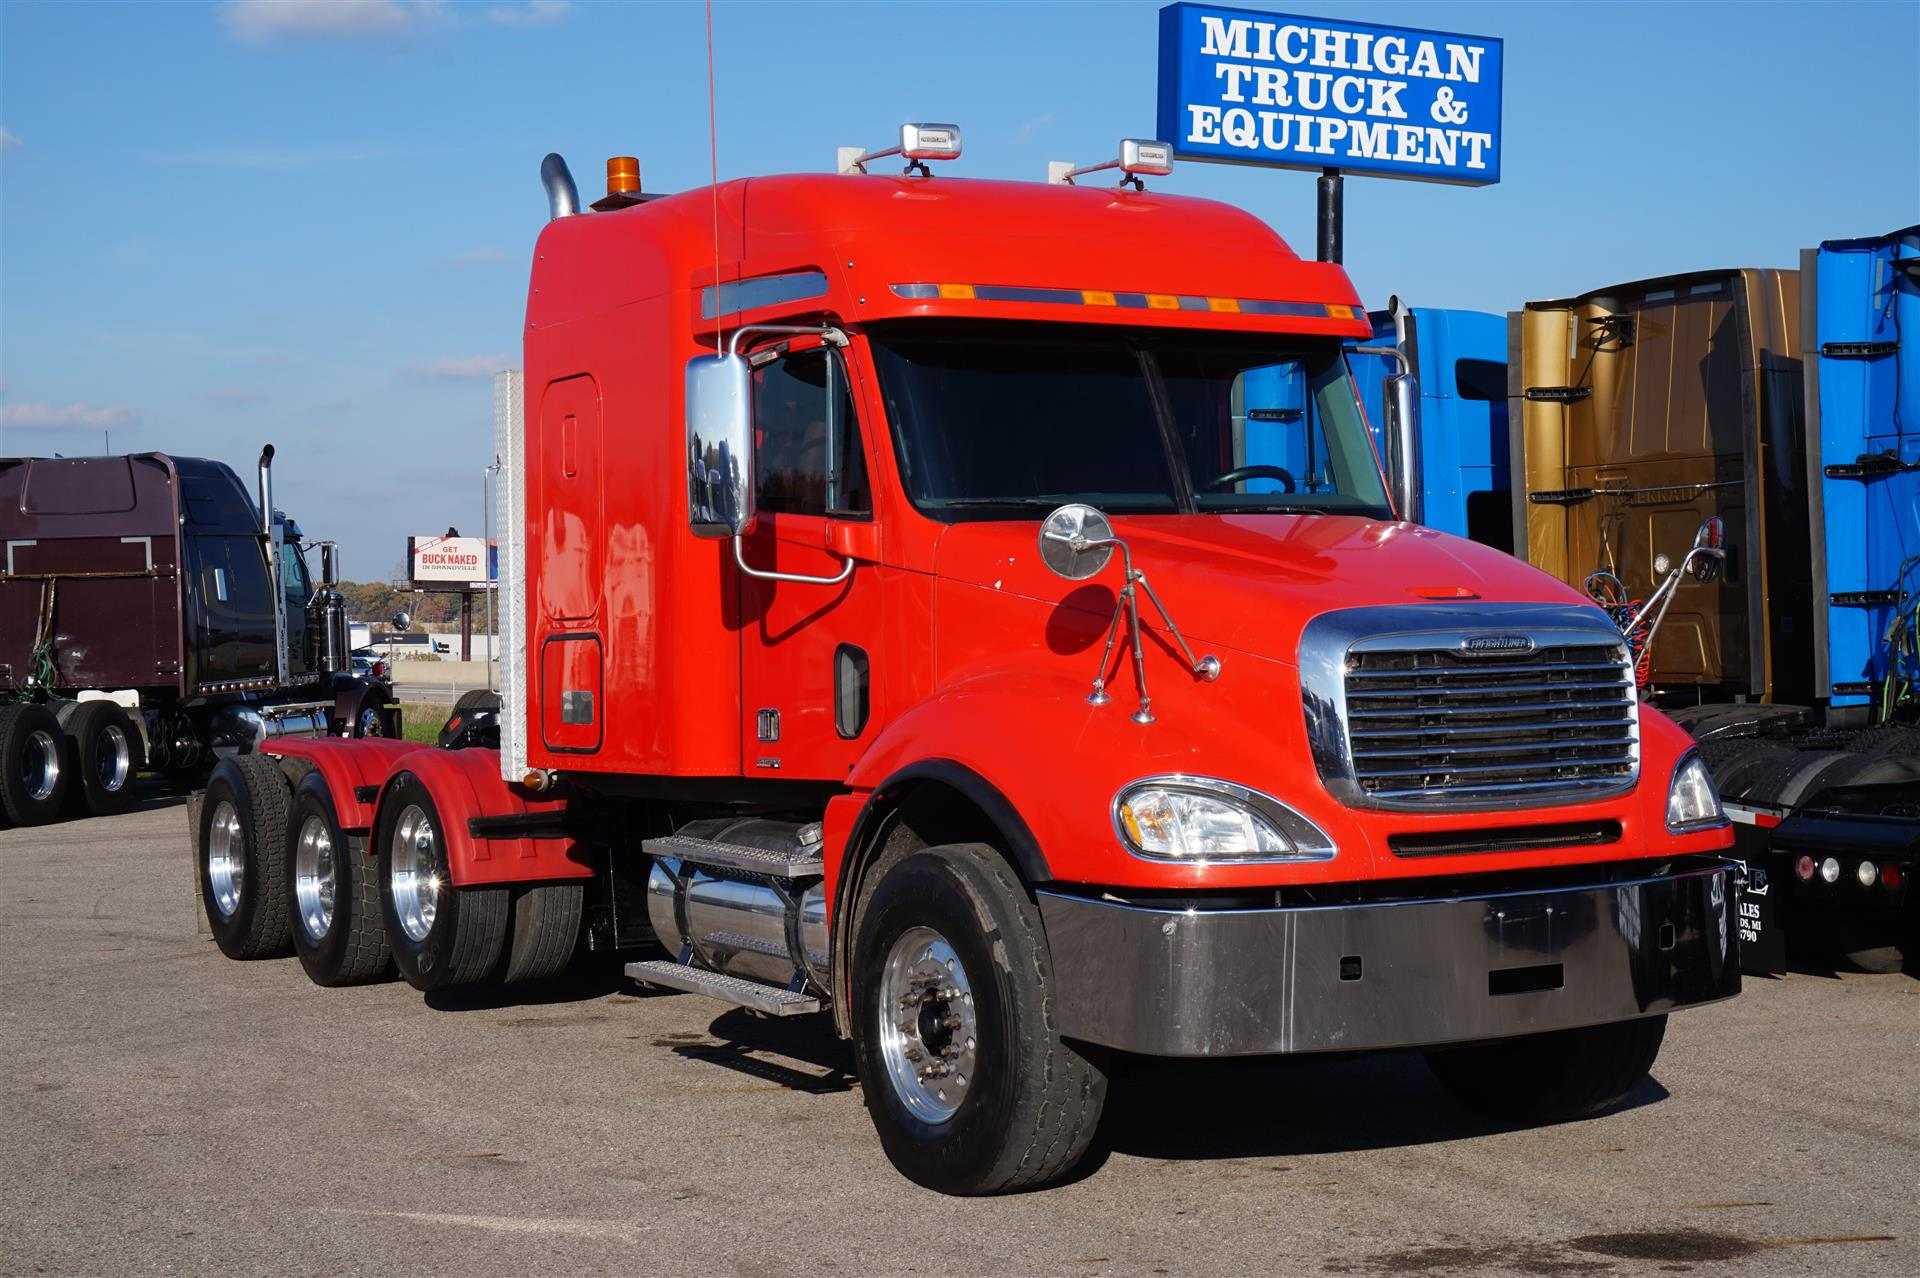 2008 Freightliner Columbia - 120 DAYCAB 534736 Daycab